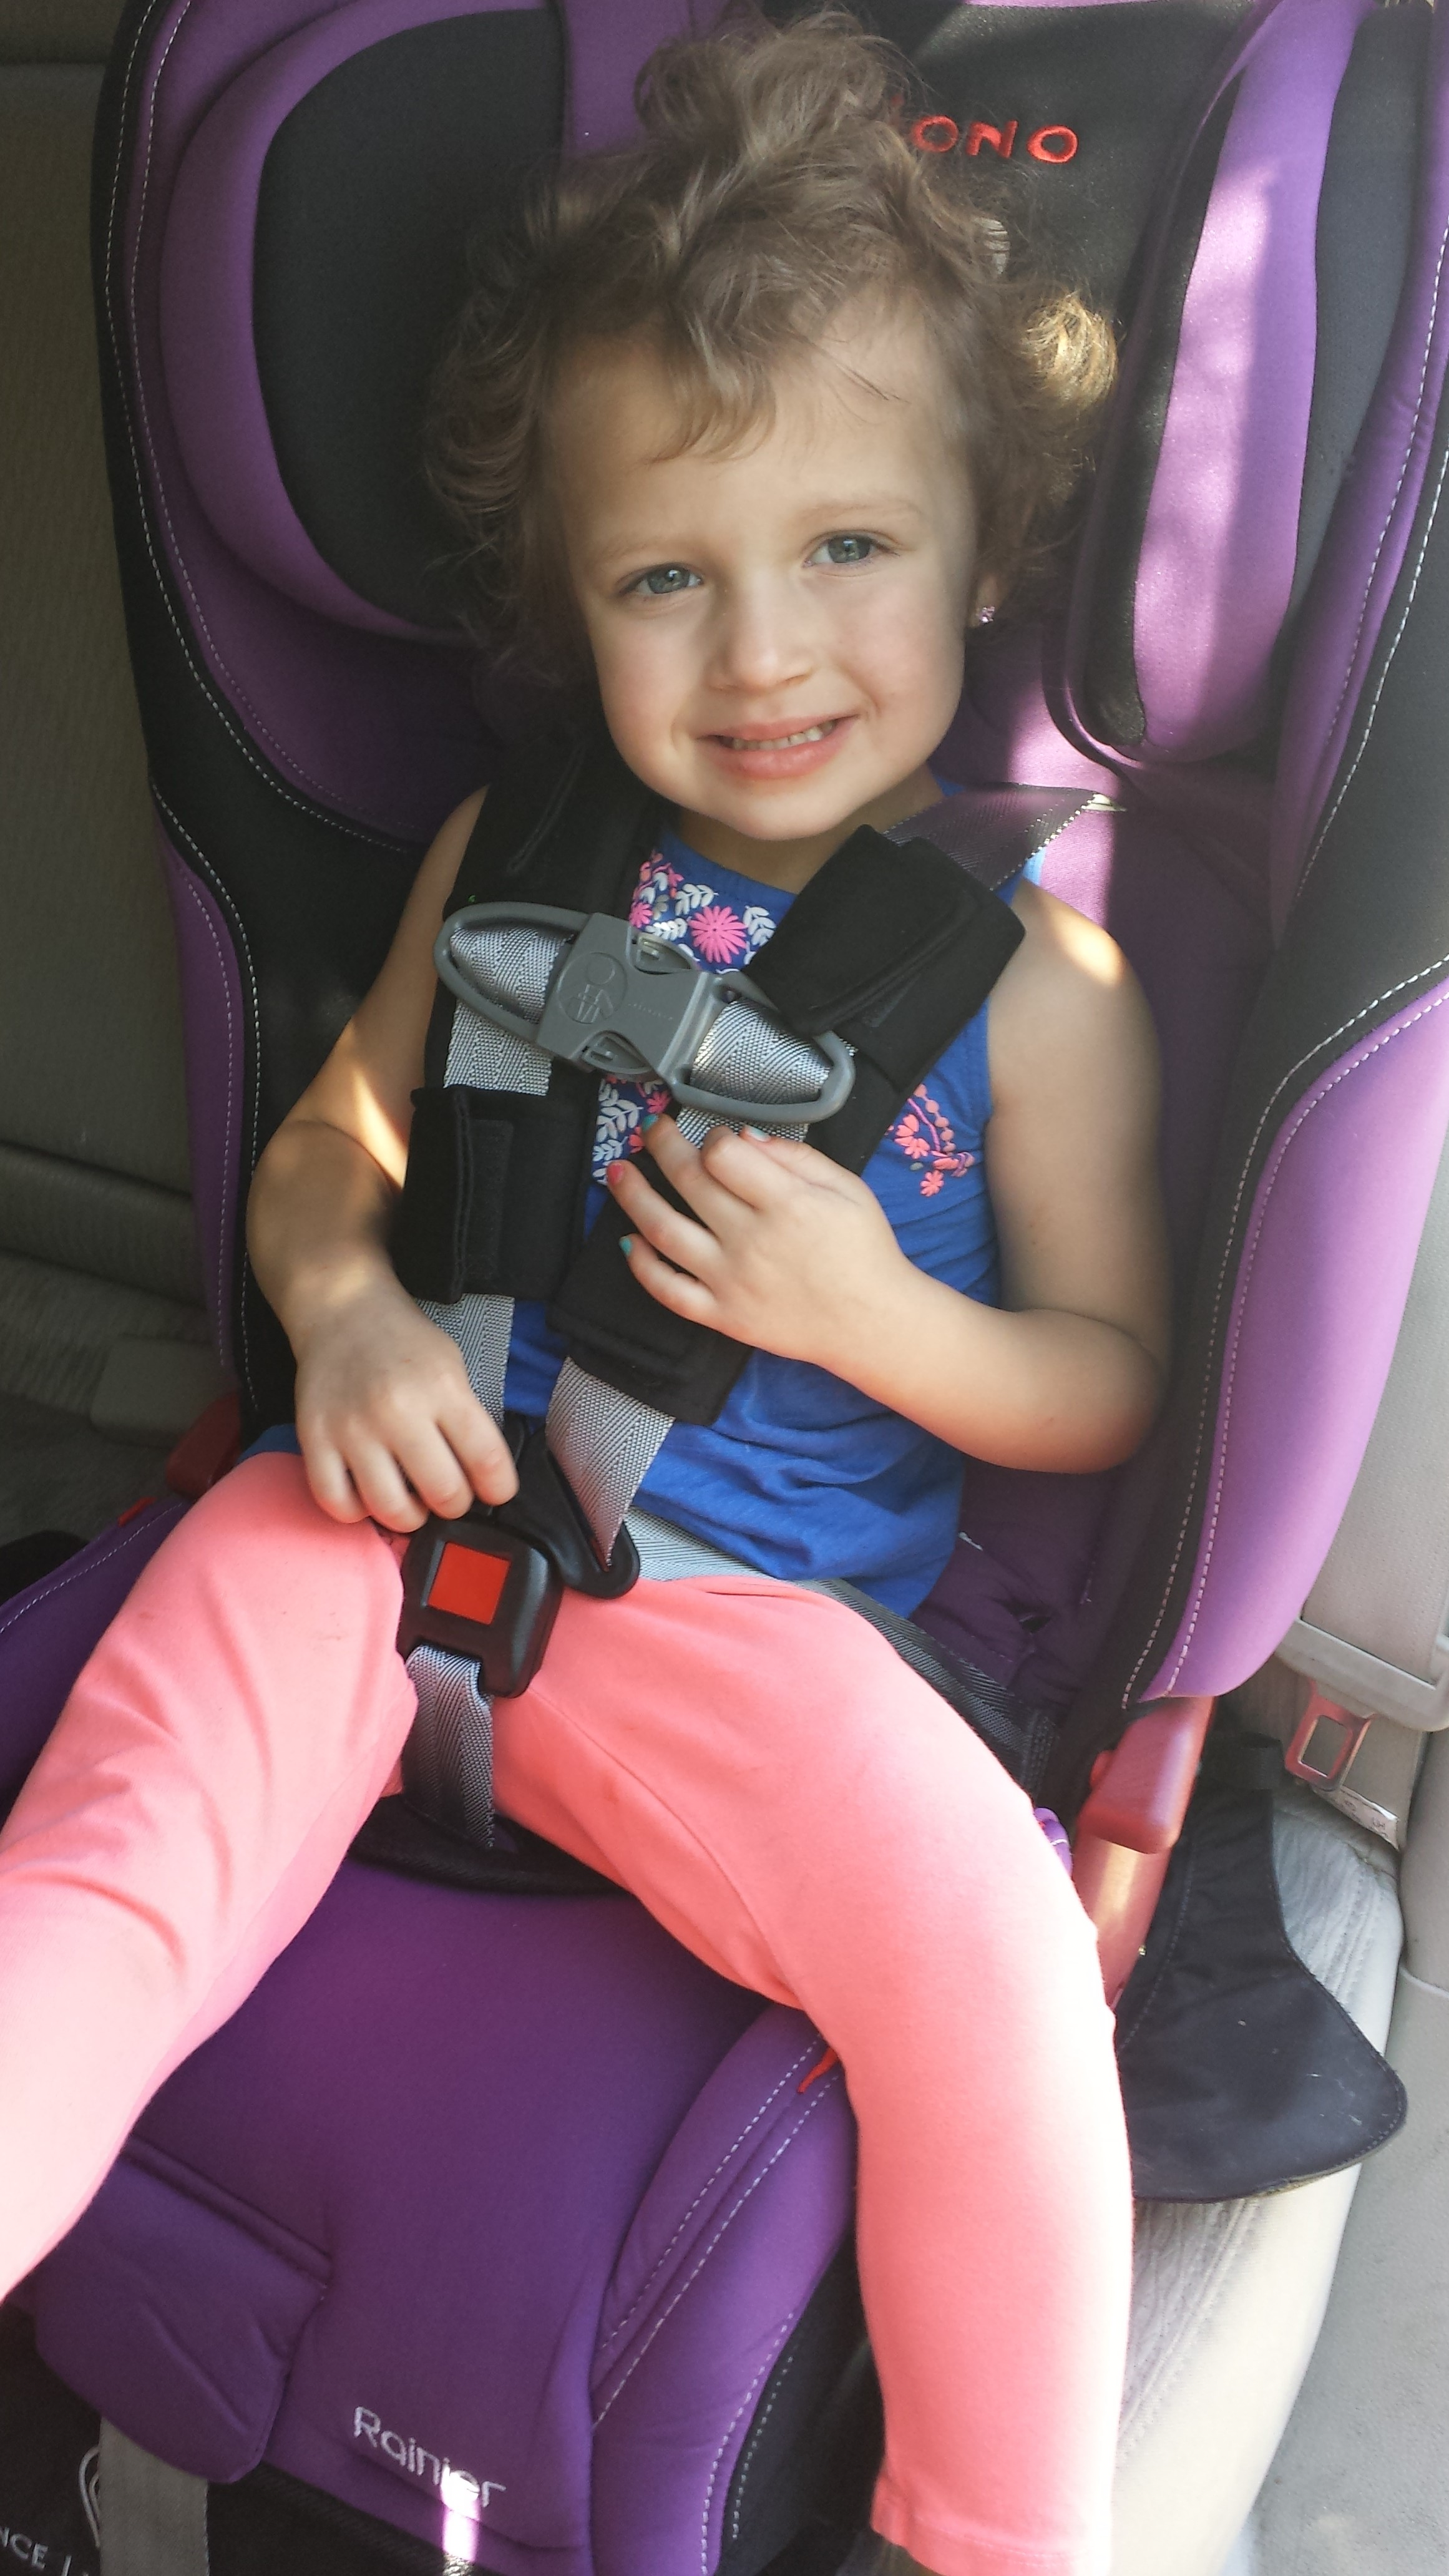 Diono Rainier Convertible Booster Car Seat Review And Giveaway